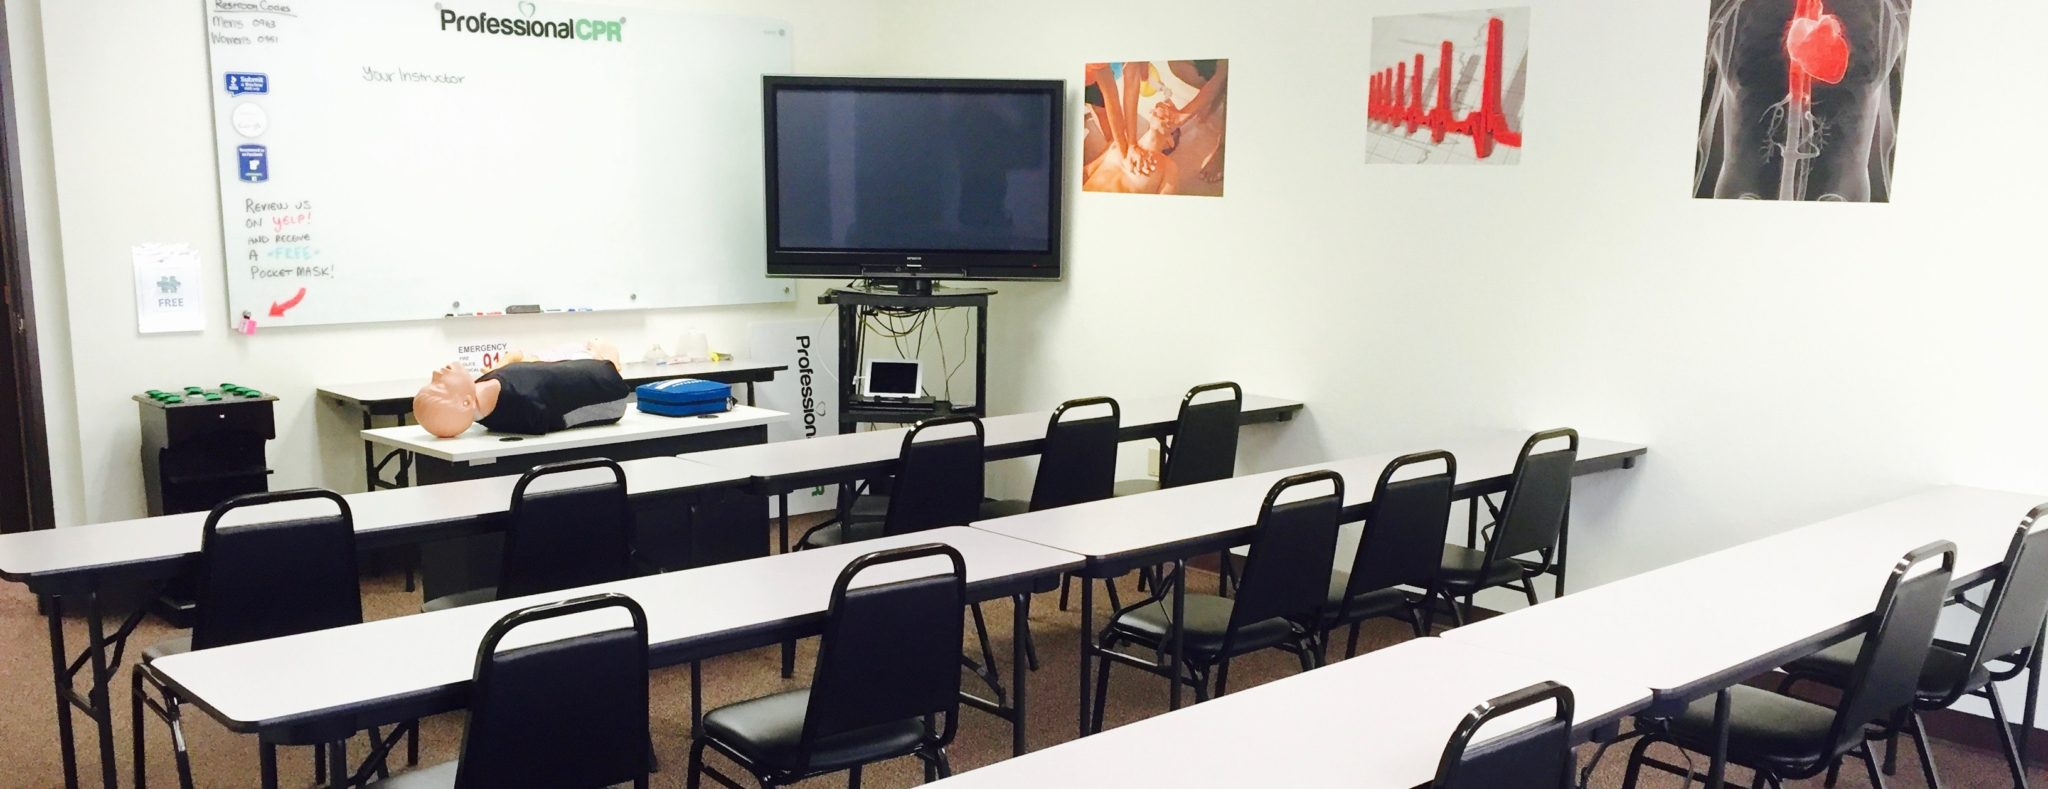 cpr classes sacramento stockton modesto